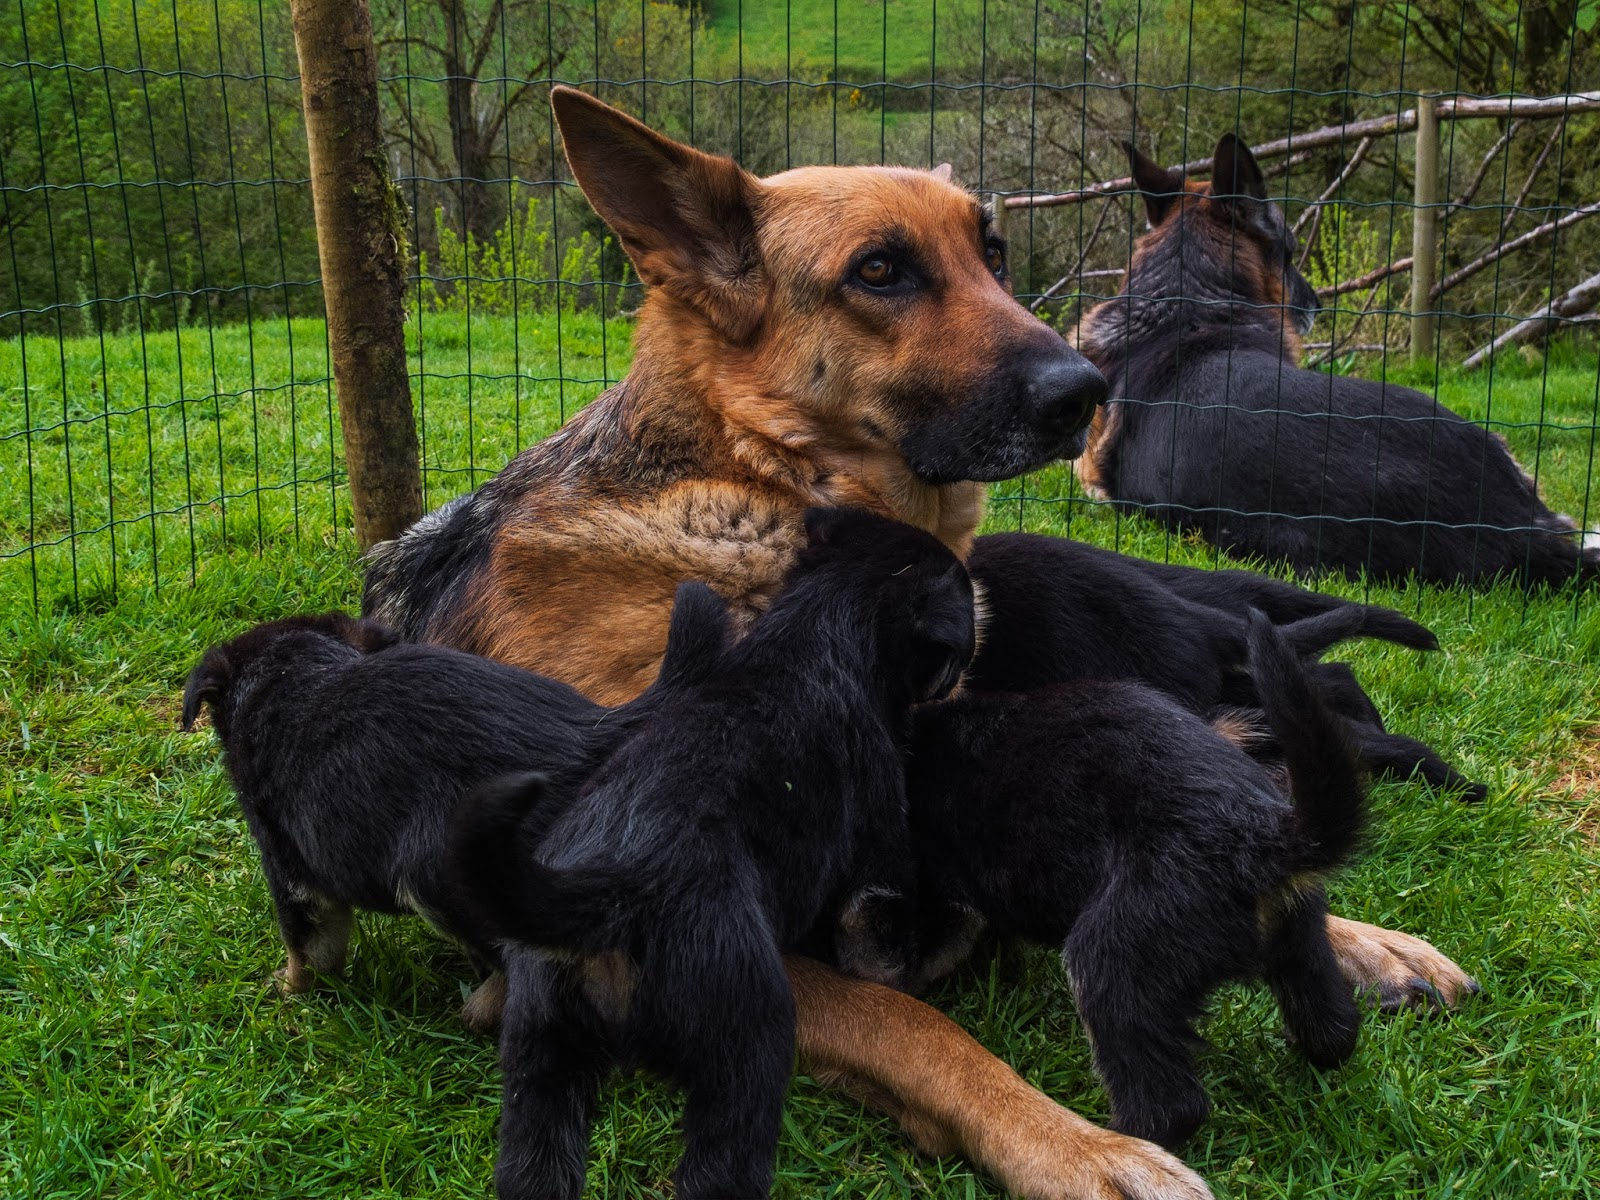 German Shepherd parents with their month old litter outside on the grass.